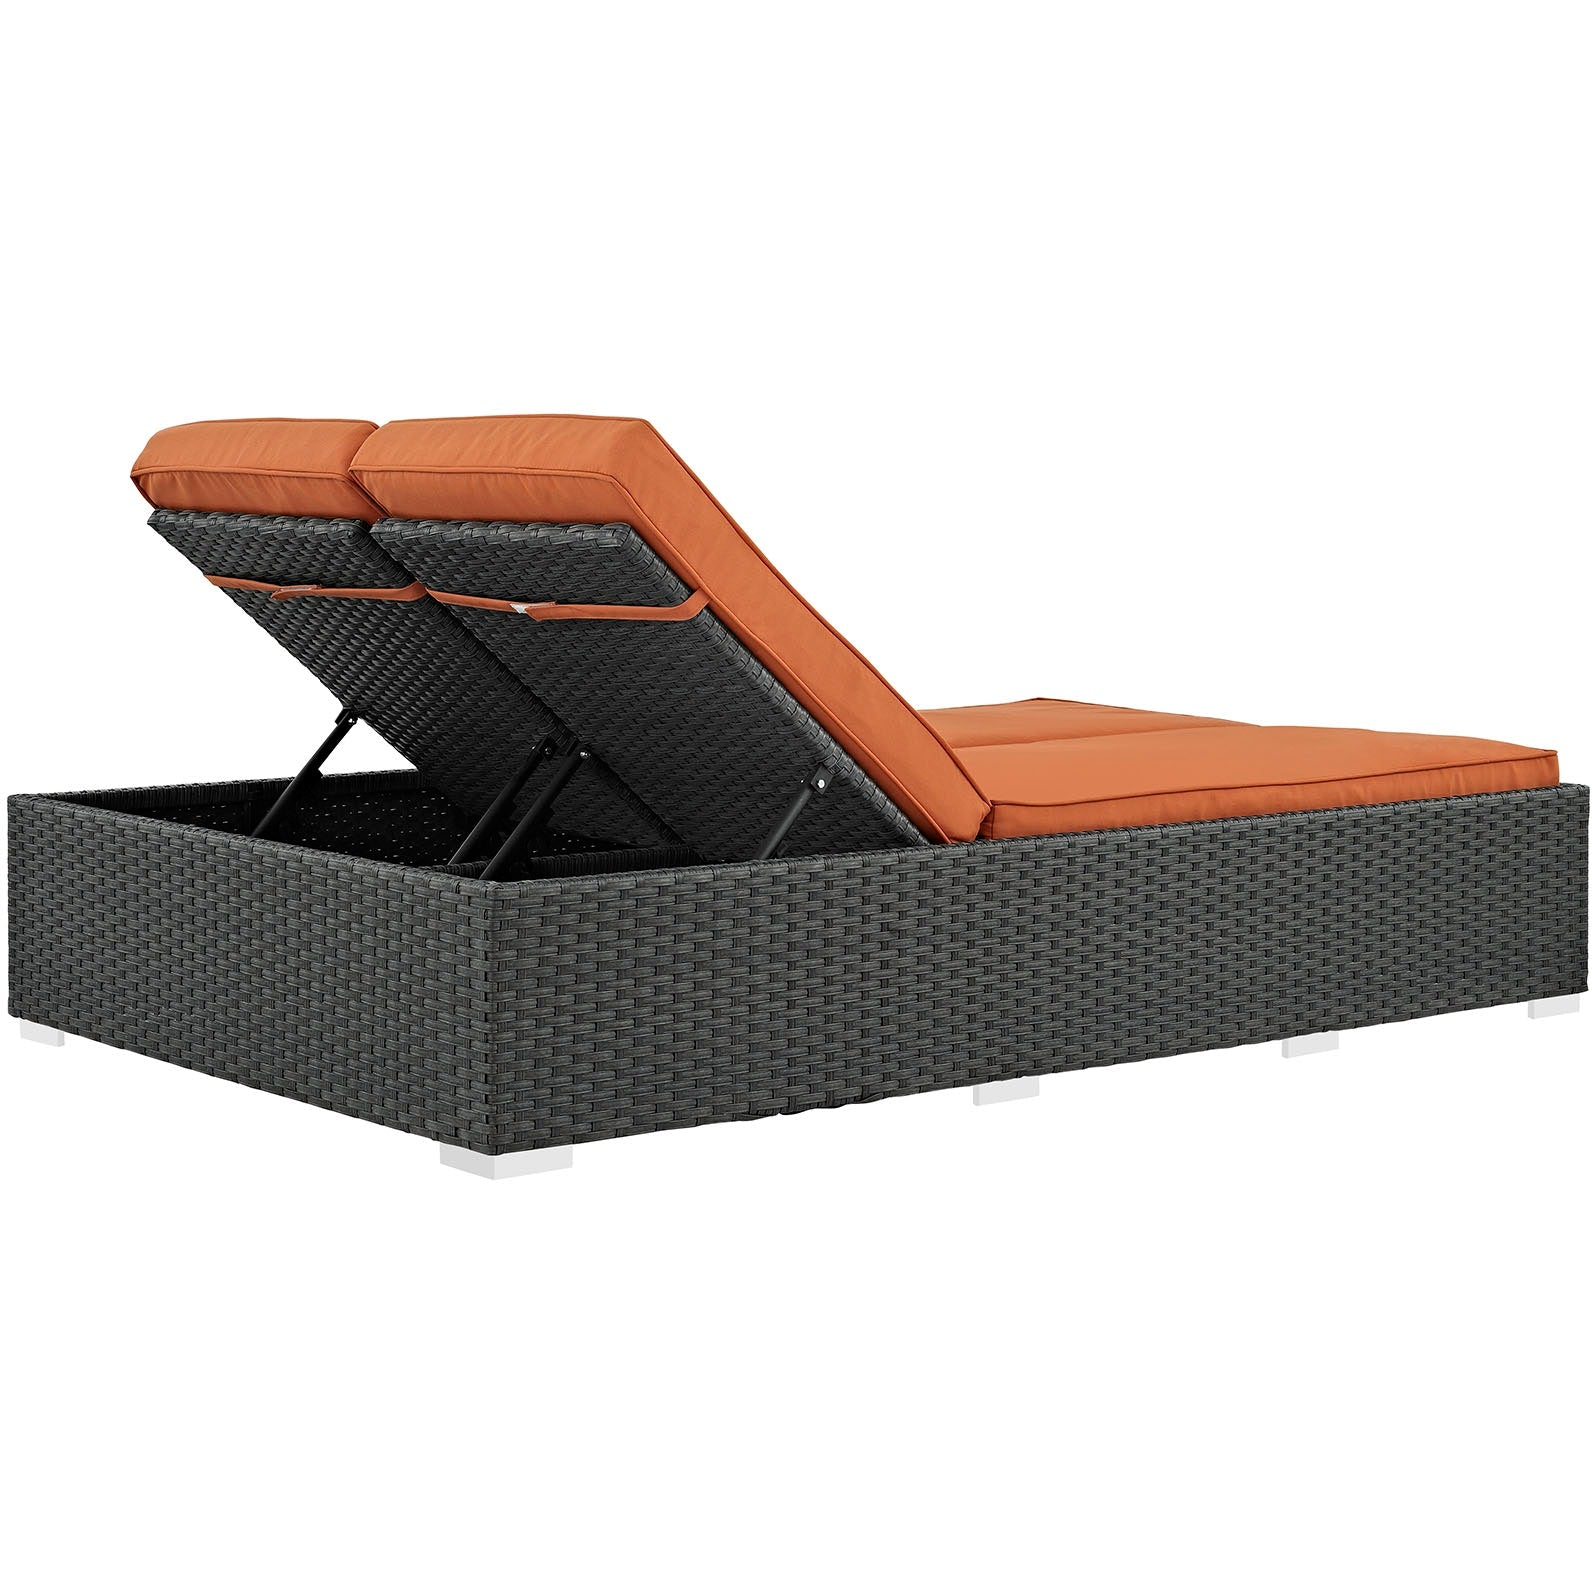 Sojourn Outdoor Patio Sunbrella® Double Chaise - Chocolate Tuscan